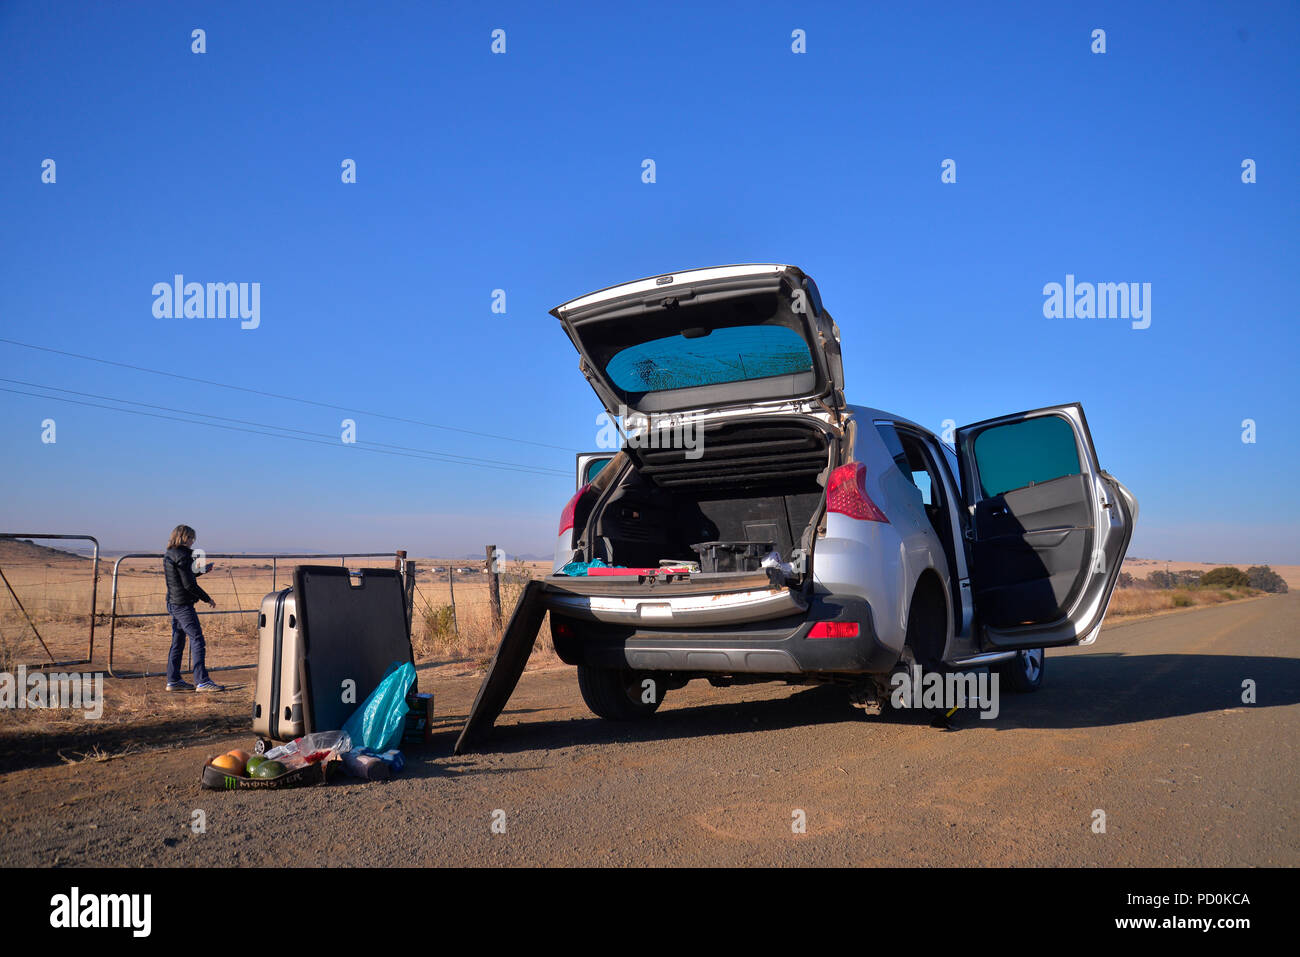 South Africa. Breakdown in the countryside. Car stranded in road. Woman using cell phone for help. Cases unpacked in road. - Stock Image